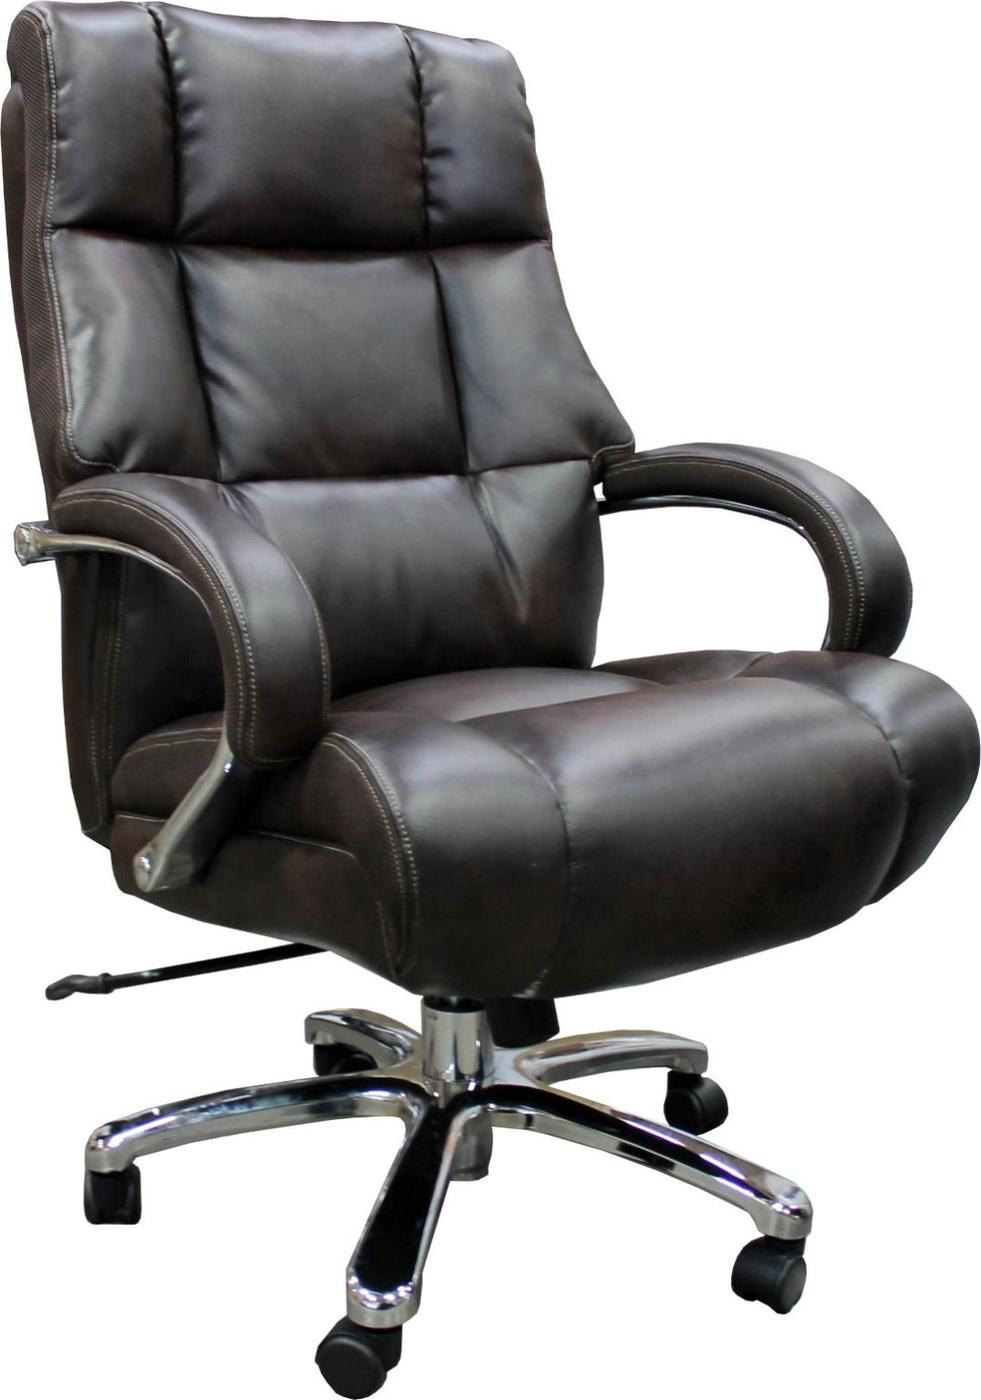 Horizon Big Tall Heavy Duty Office Cafe Espresso Desk Chair 500 Lb Capacity